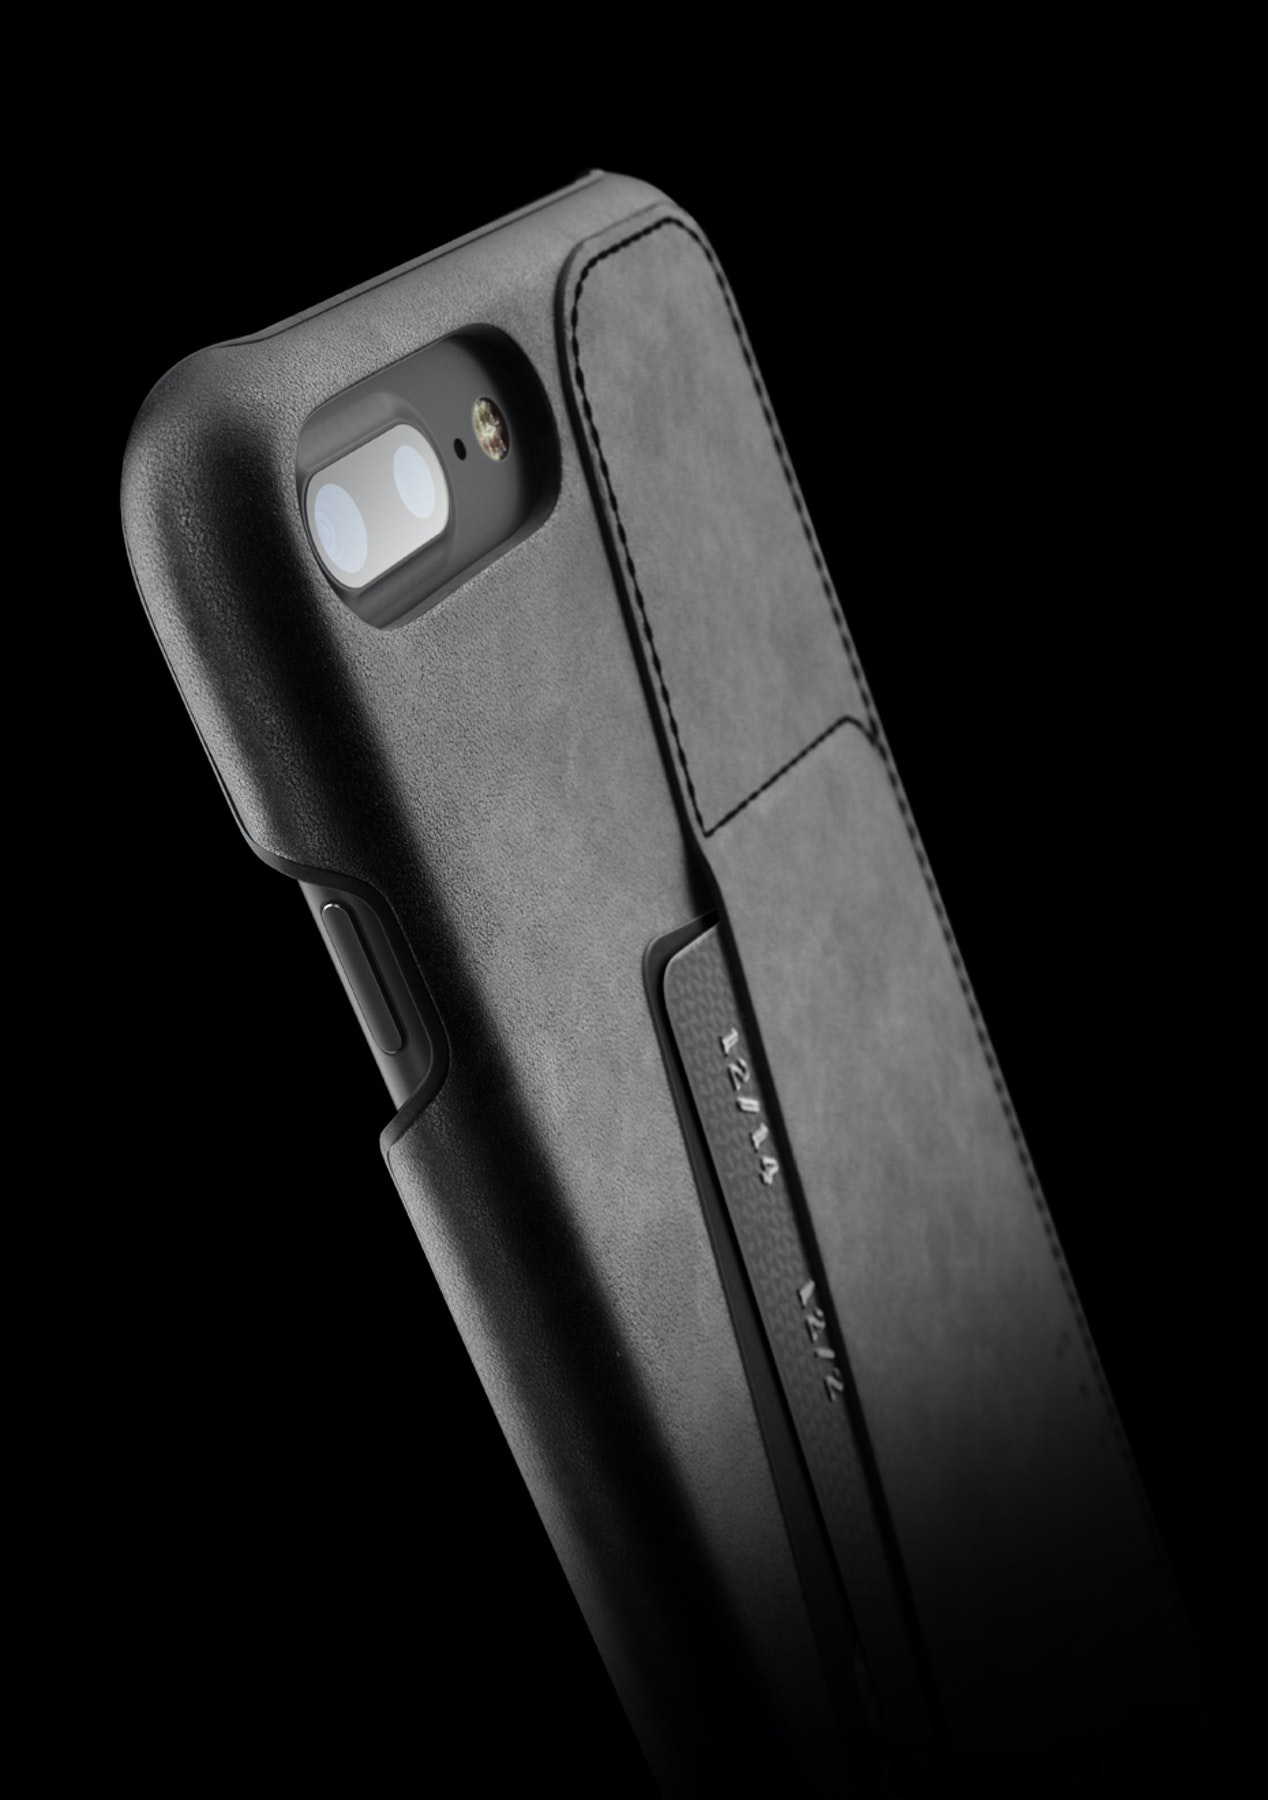 lowest price 5dda2 2390e Mujjo Leather Wallet Case for iPhone 7 Plus - Black